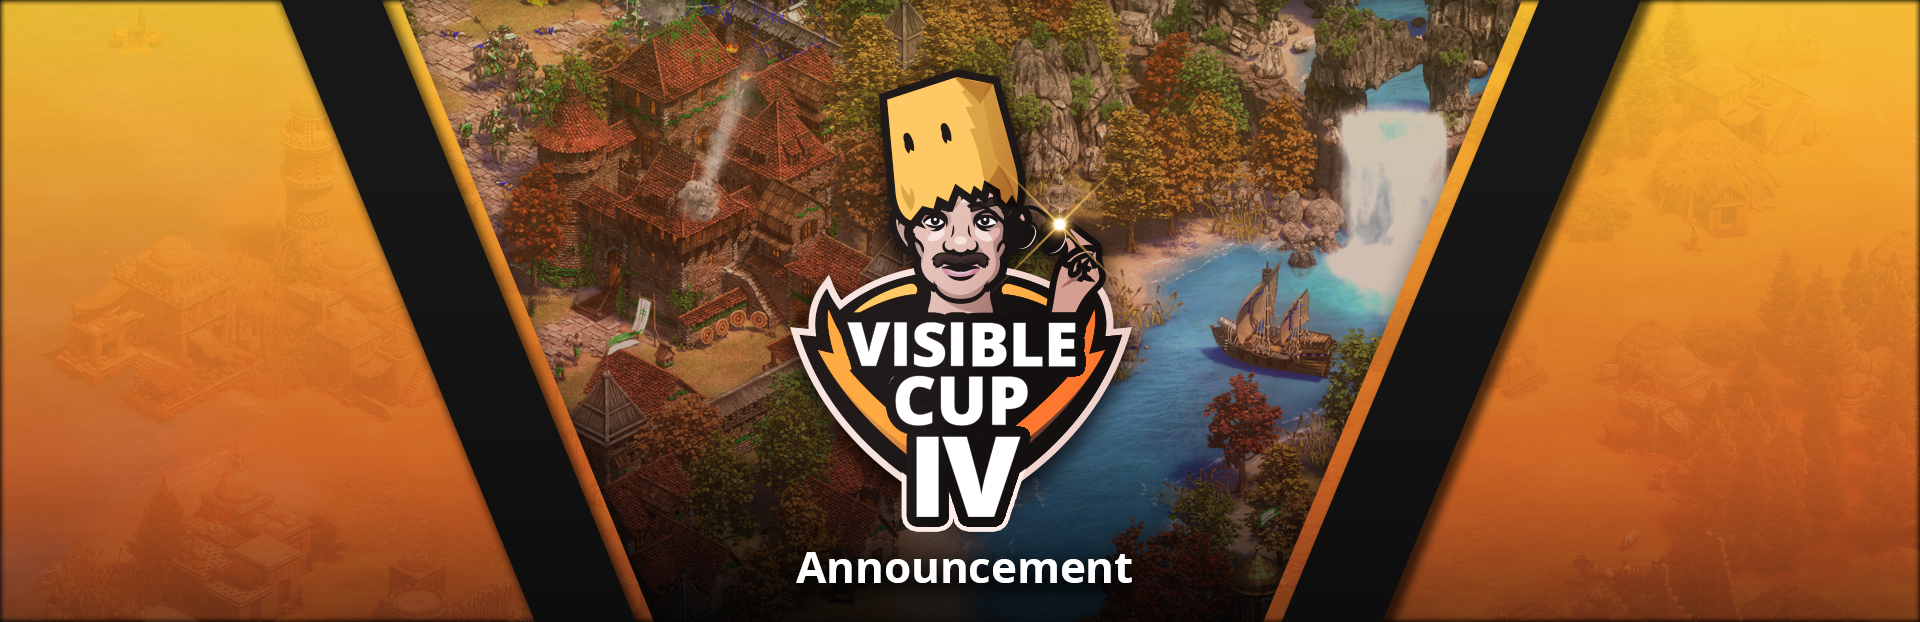 Visible Cup - Announcement.png